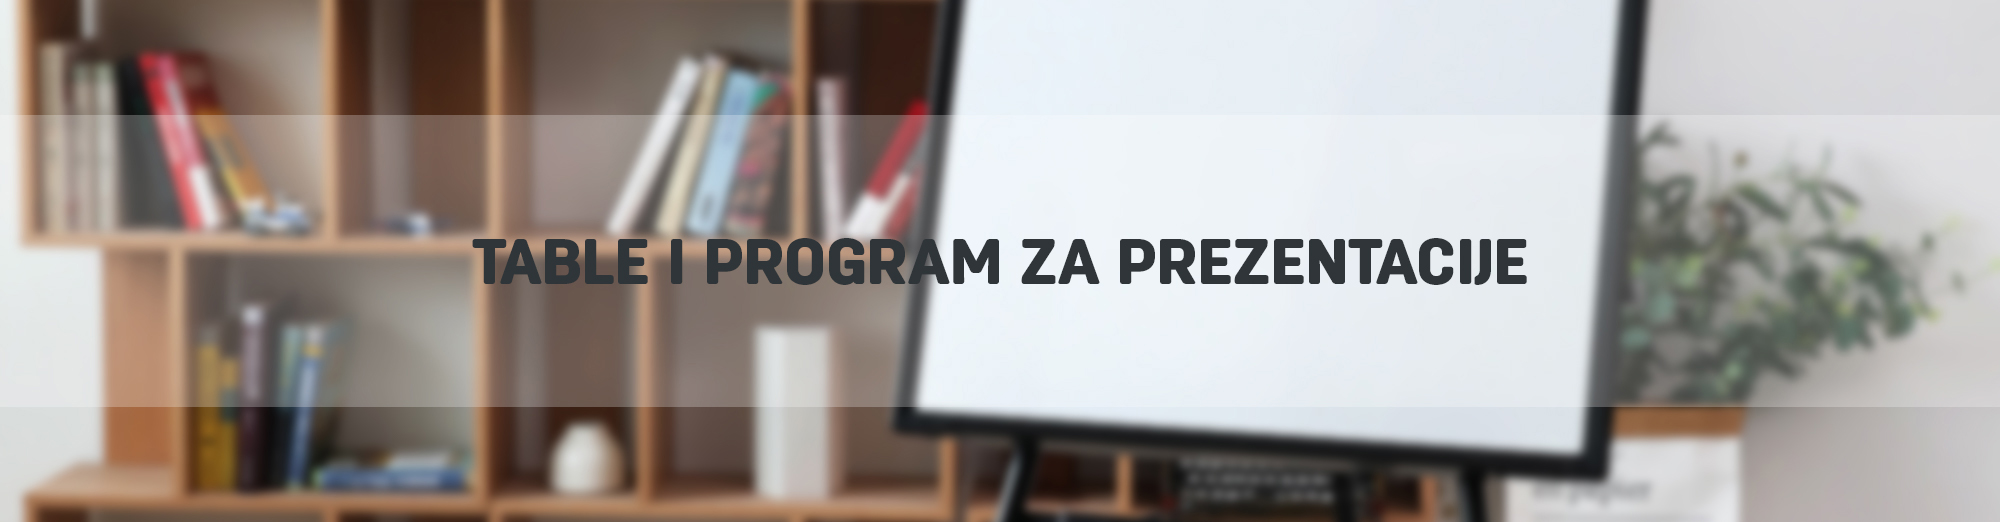 Table i program za prezentacije